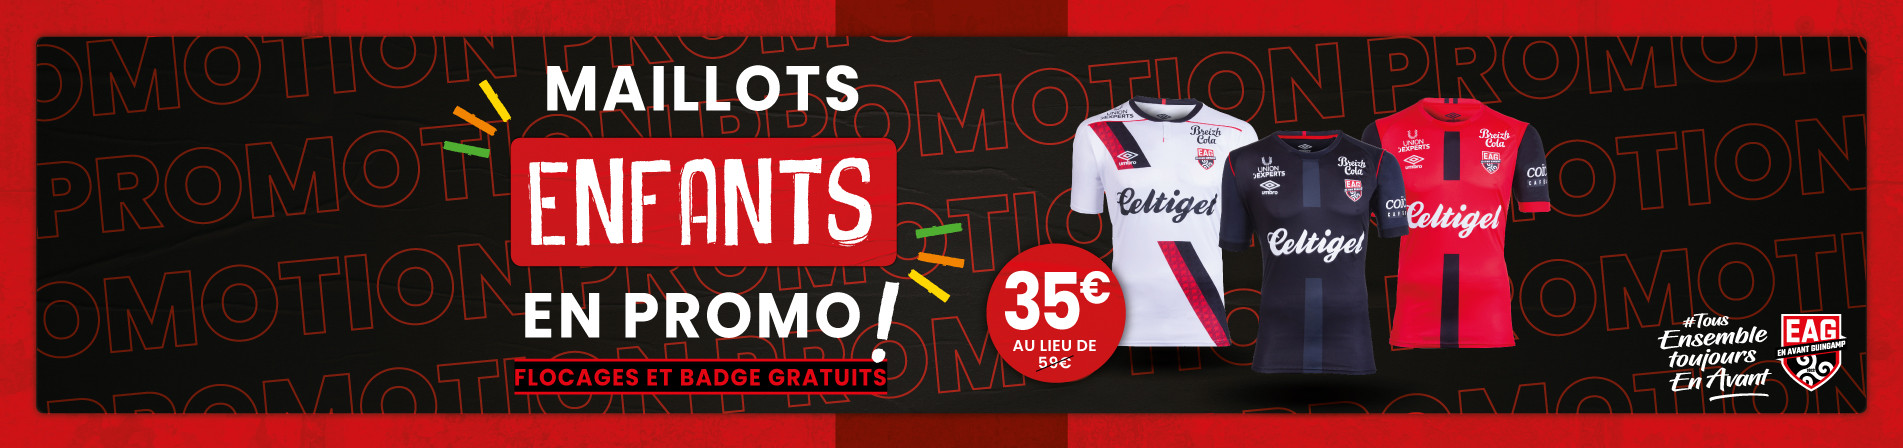 maillot 35 €